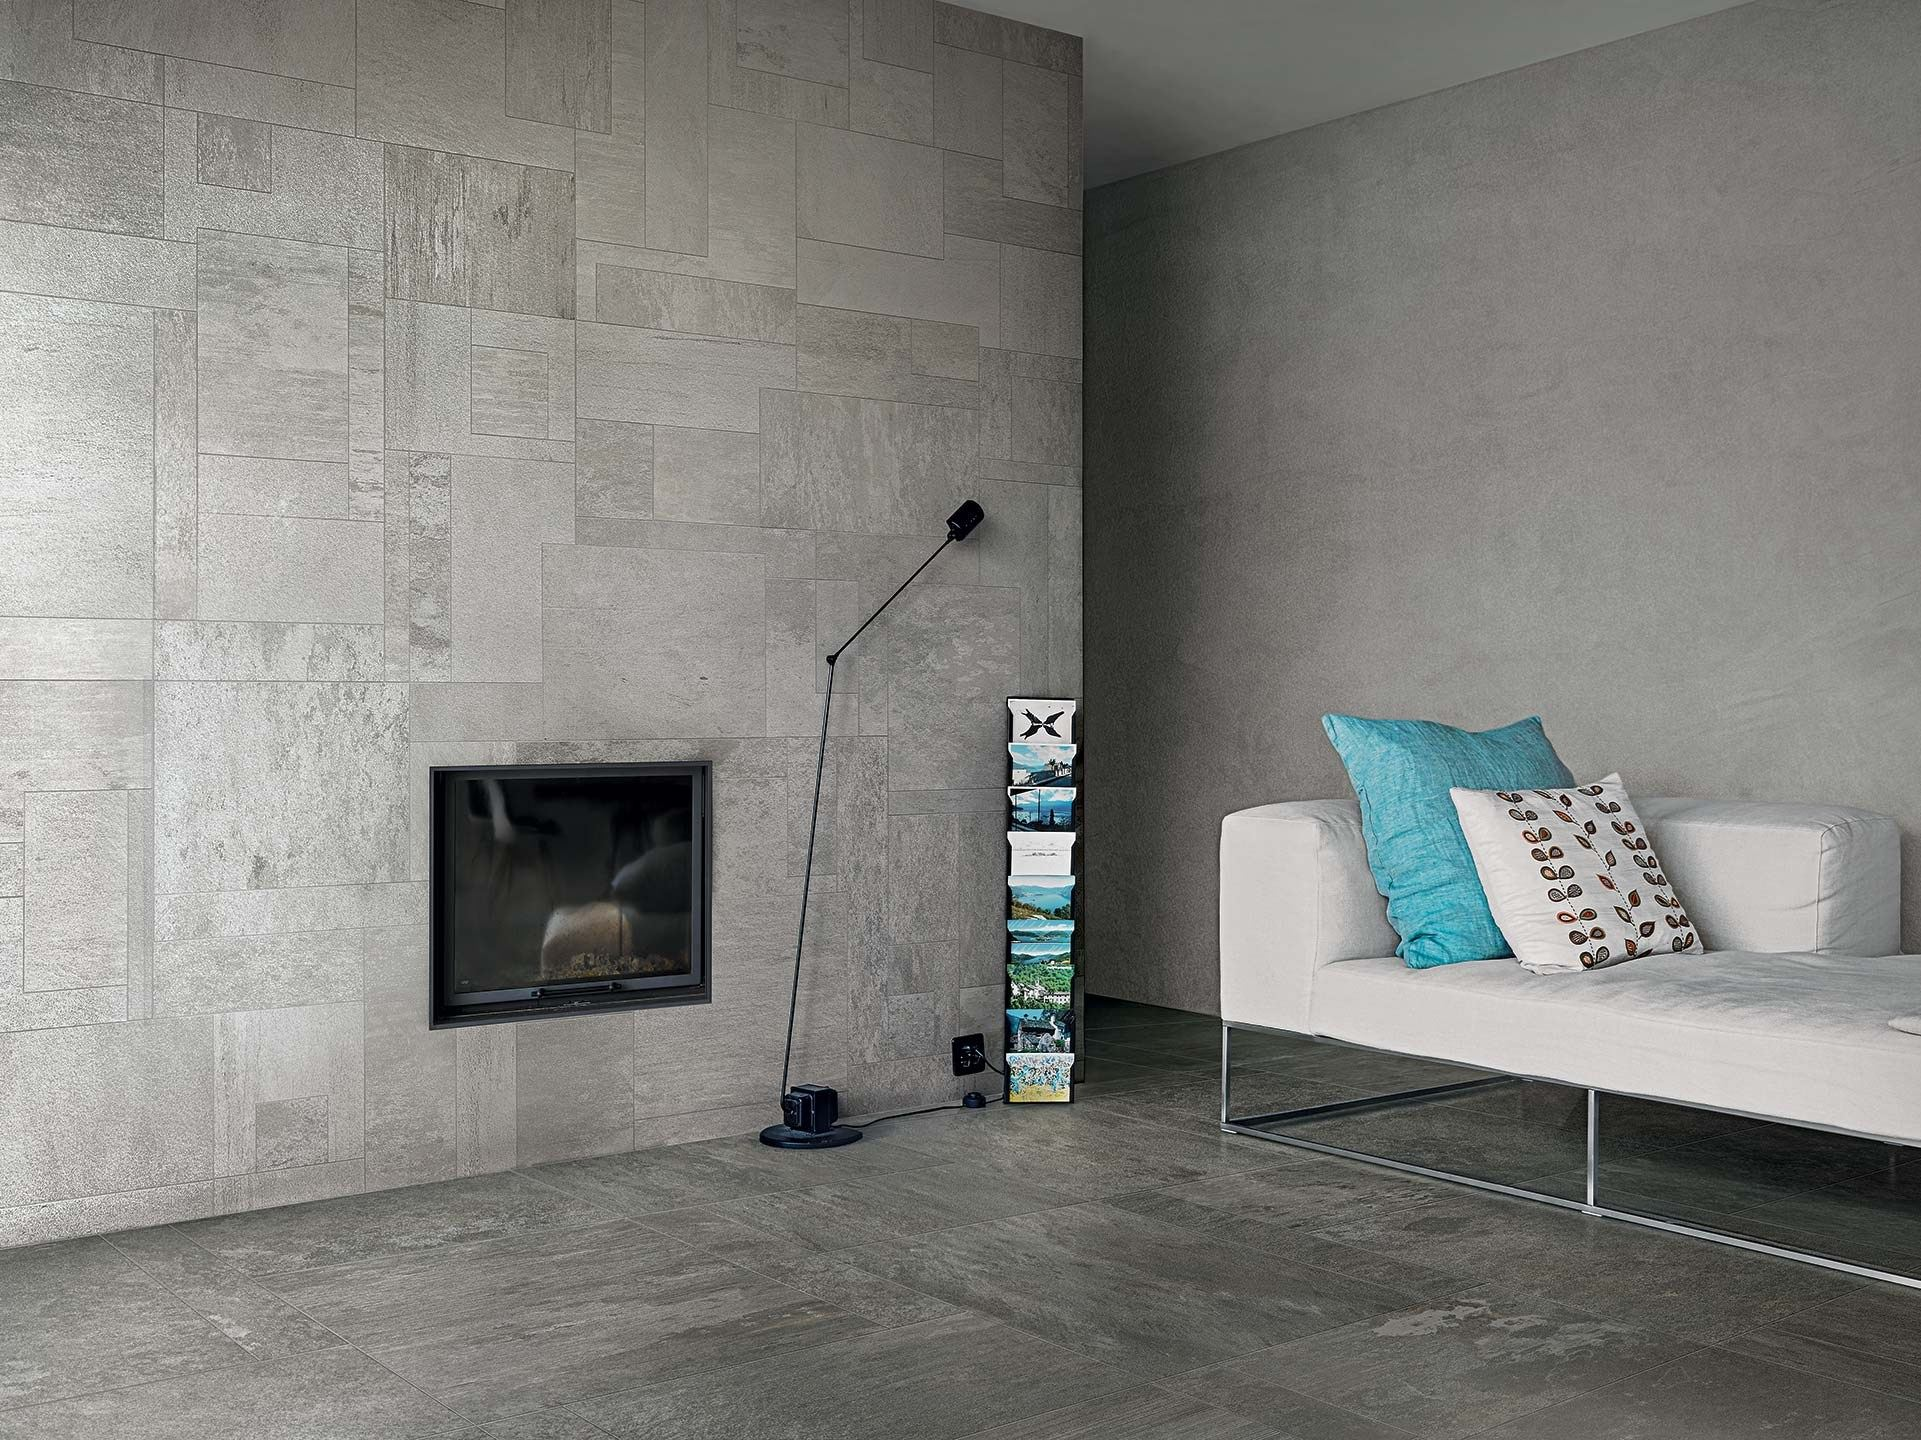 Porcelain stoneware wall floor tiles collection 01 by casa dolce casa casamood - Casamood ceramiche ...